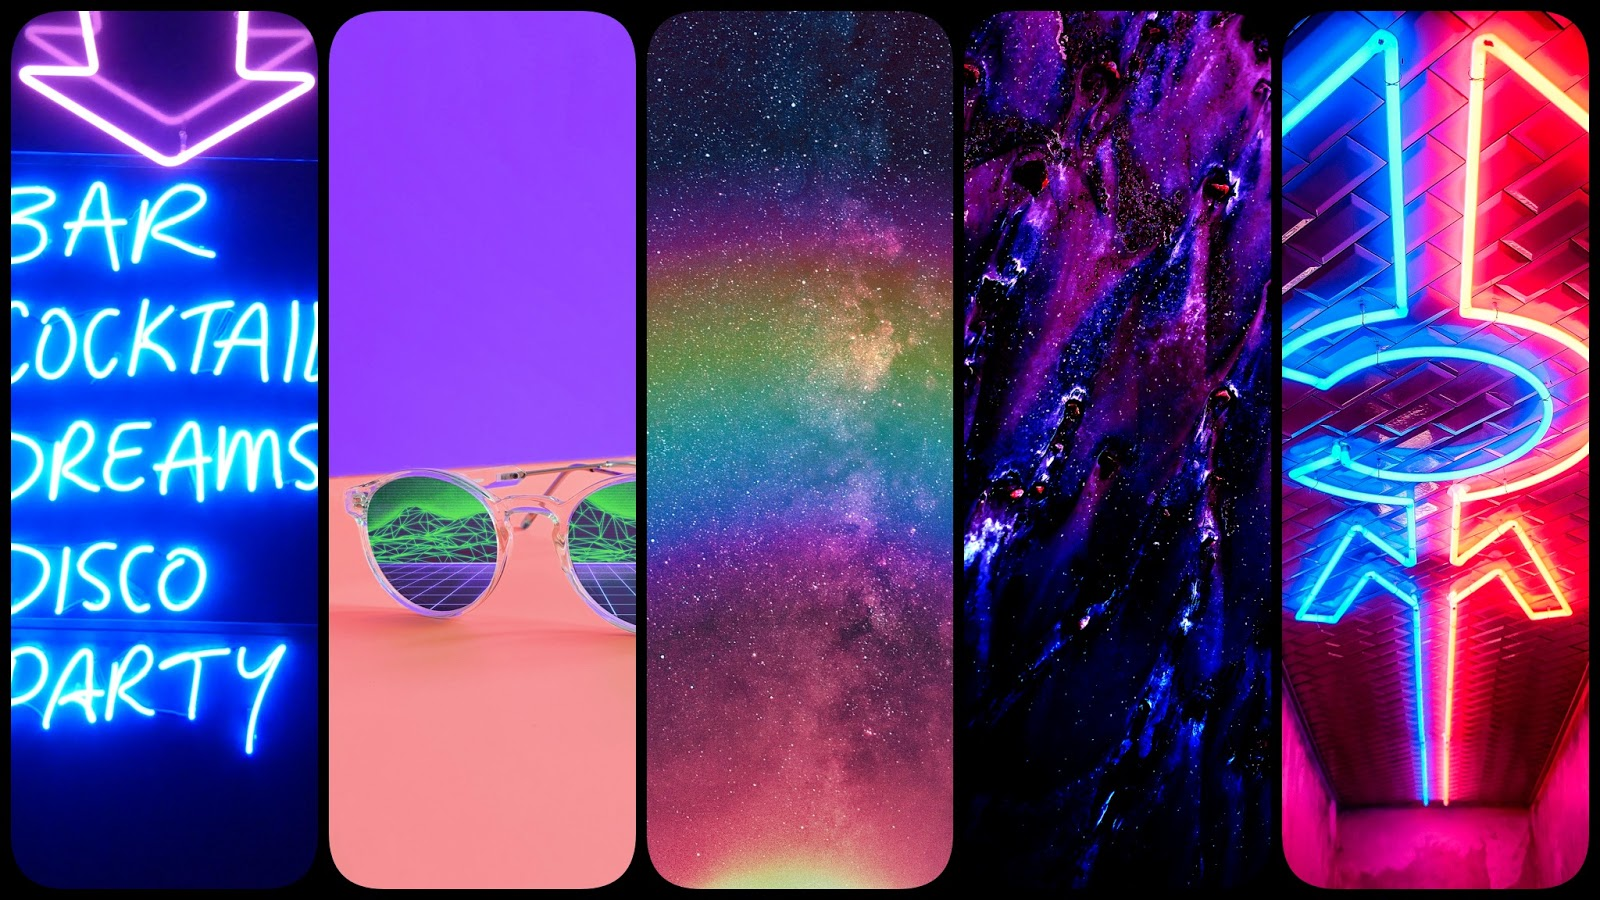 Aesthetic wallpapers for phone